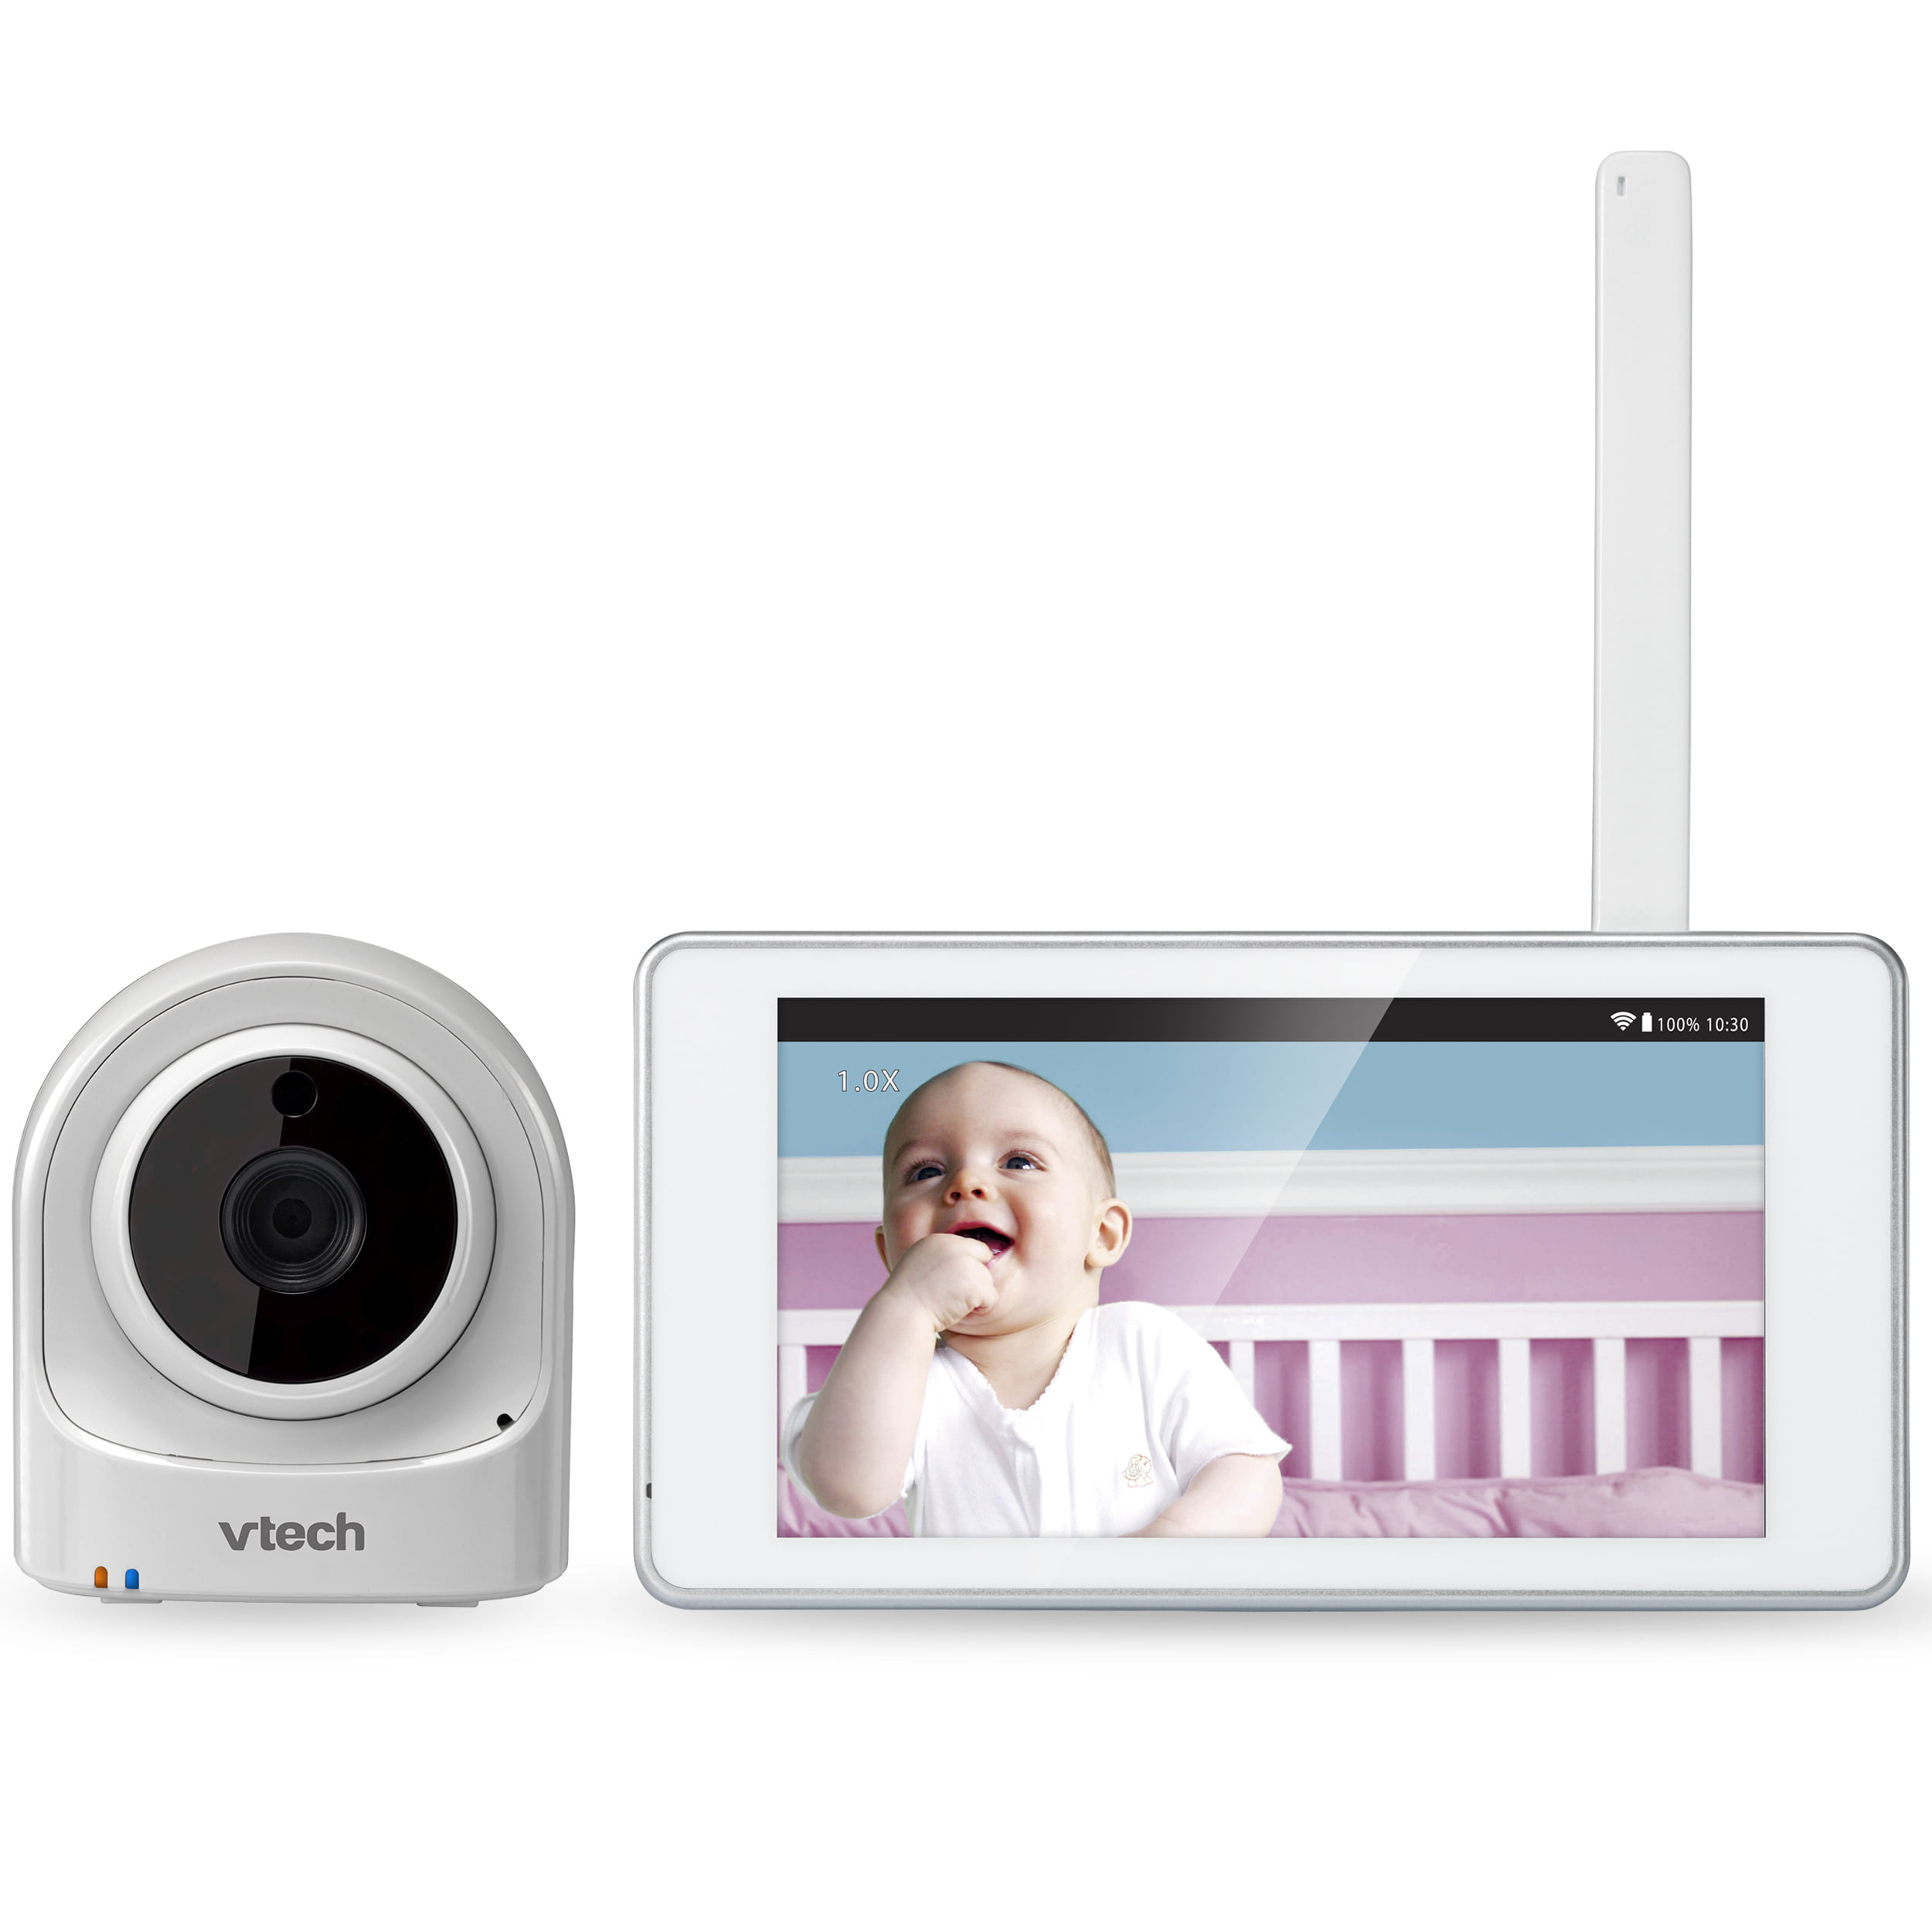 VTech VM981, Wi-Fi Video Baby Monitor, Remote Access by VTech